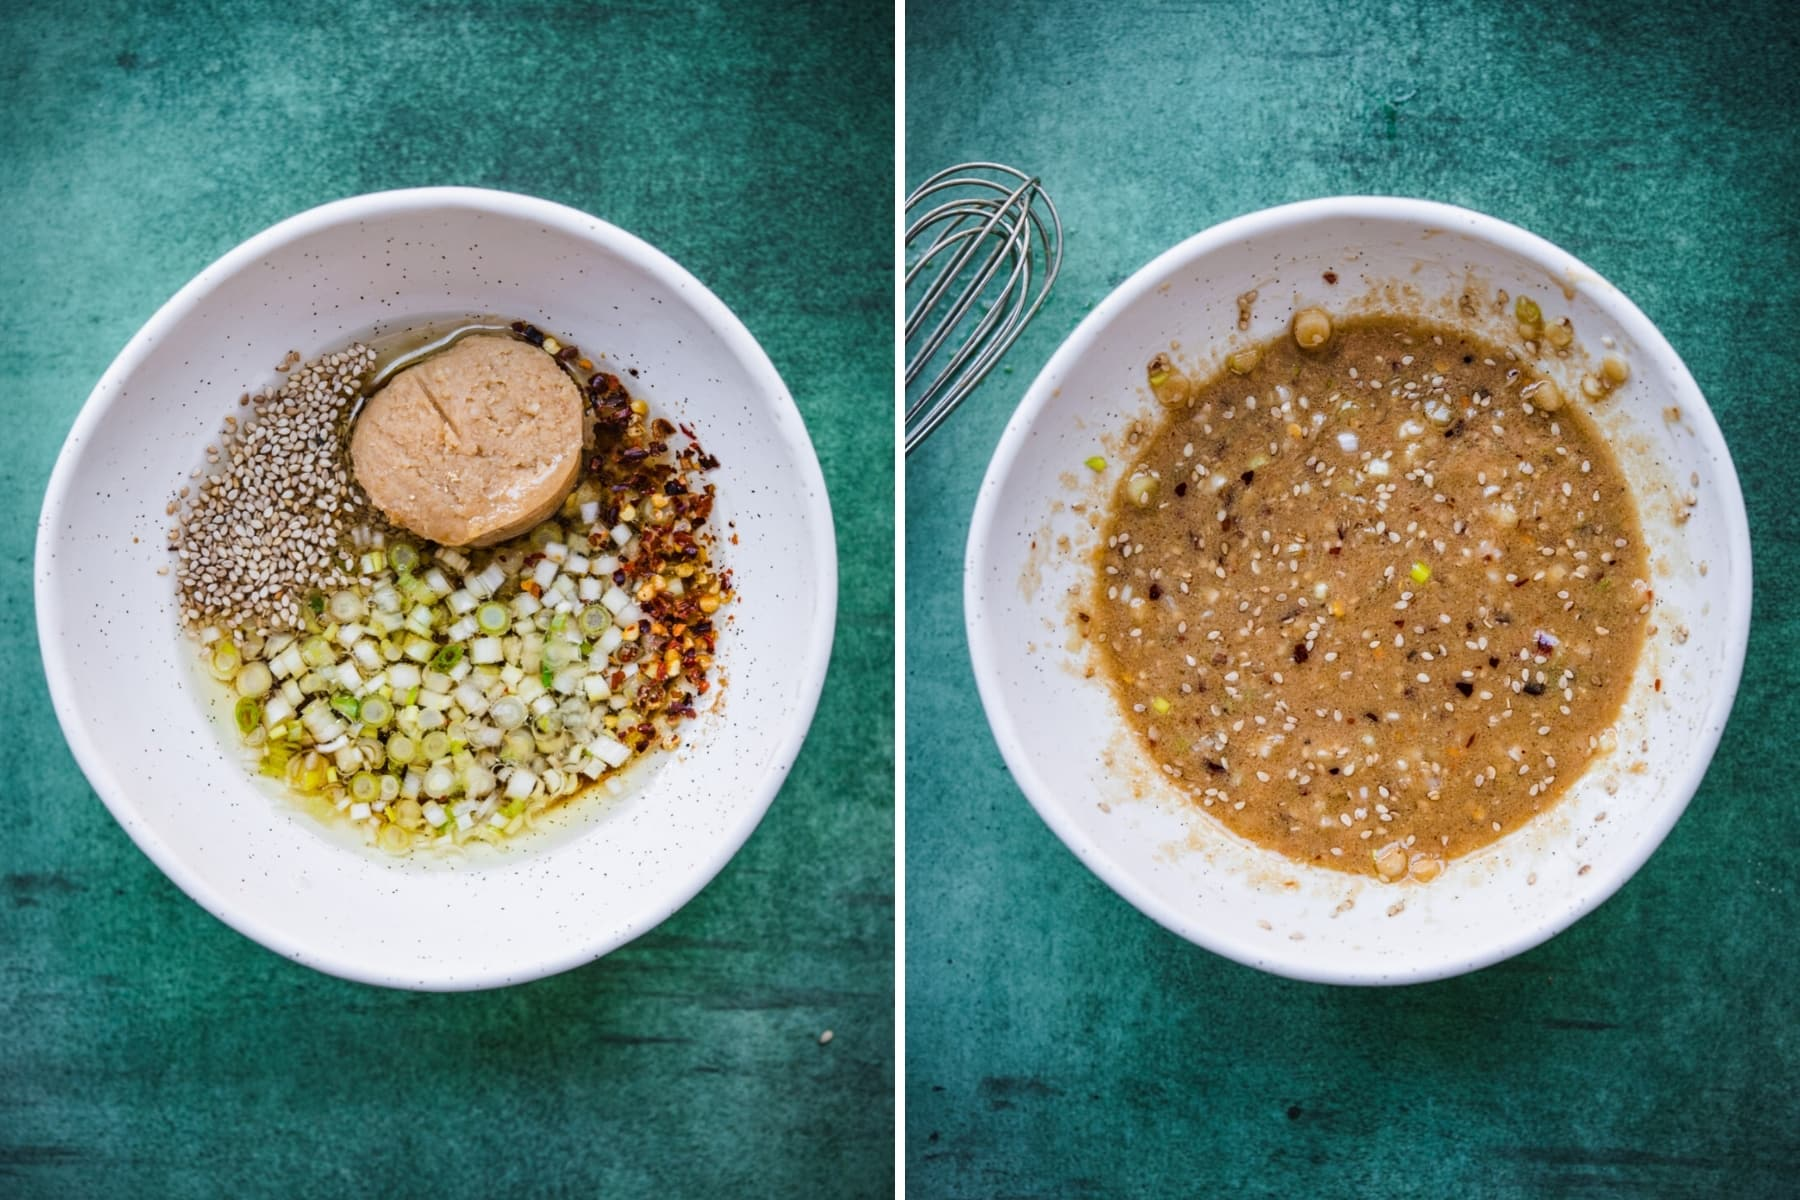 overhead view of before and after mixing together ingredients for miso dipping sauce.